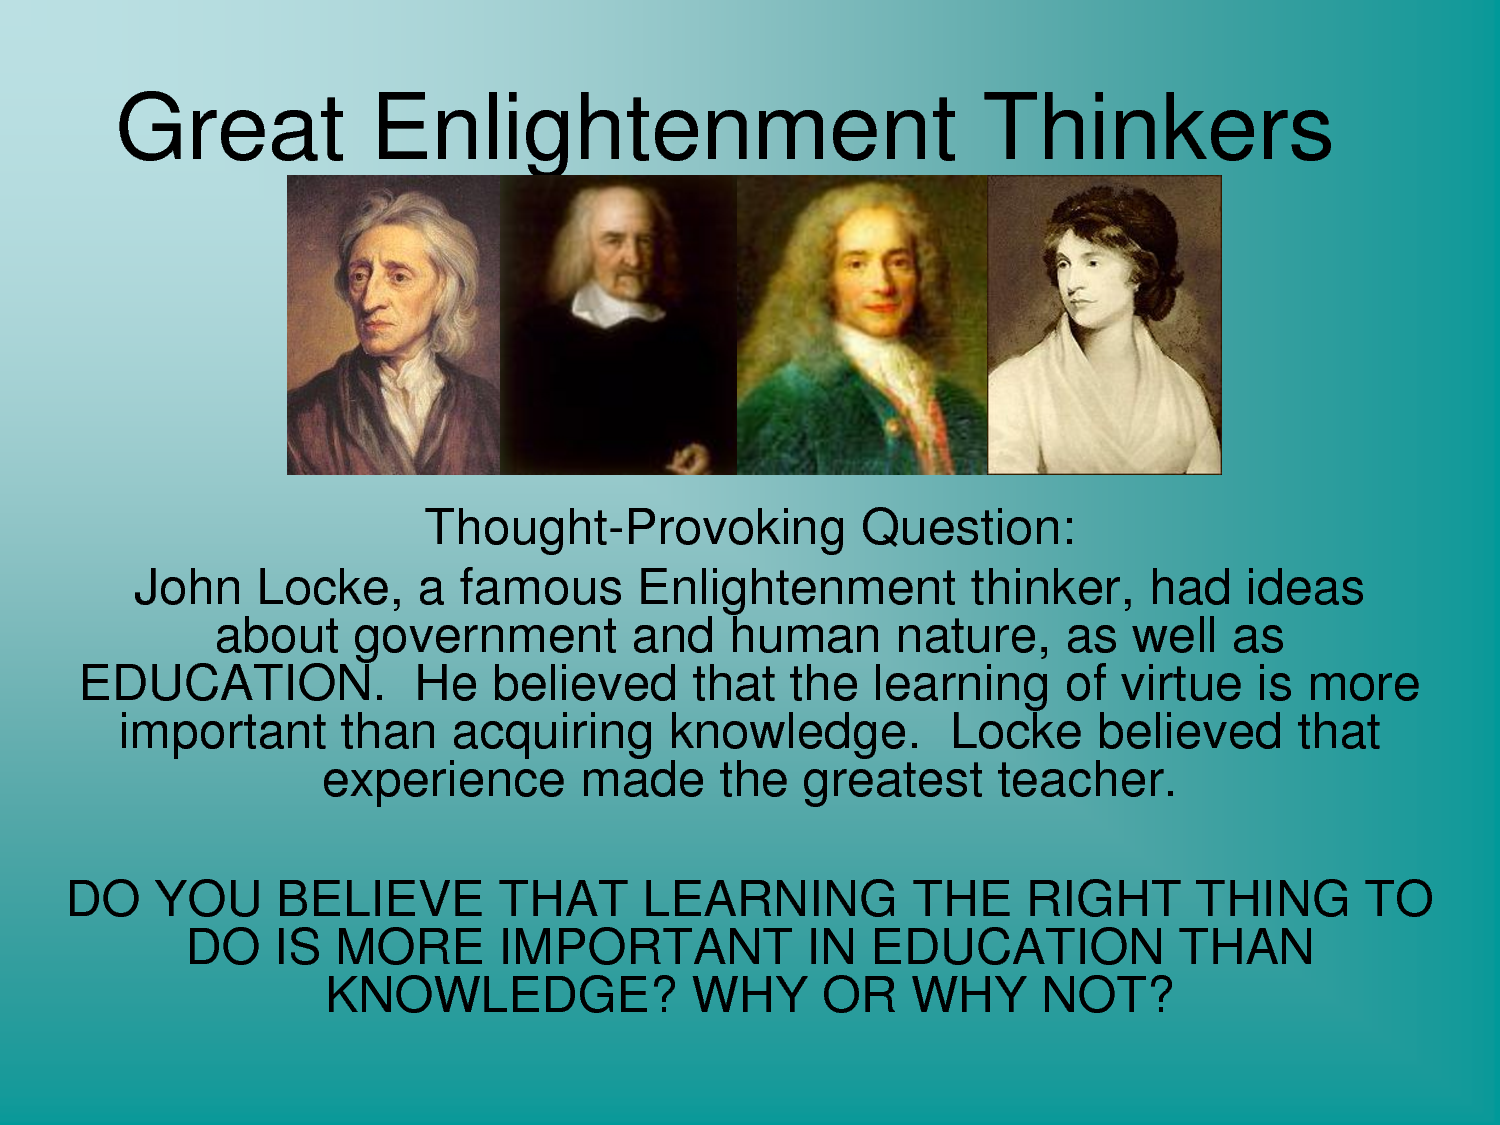 comparing enlightenment thinkers The enlightenment thinkers believed very strongly in rationality and science they believed that the natural world and even human behavior could be explained scientifically they even felt that they could use the scientific method to improve human society by contrast, the romantics rejected the whole idea of reason and science.